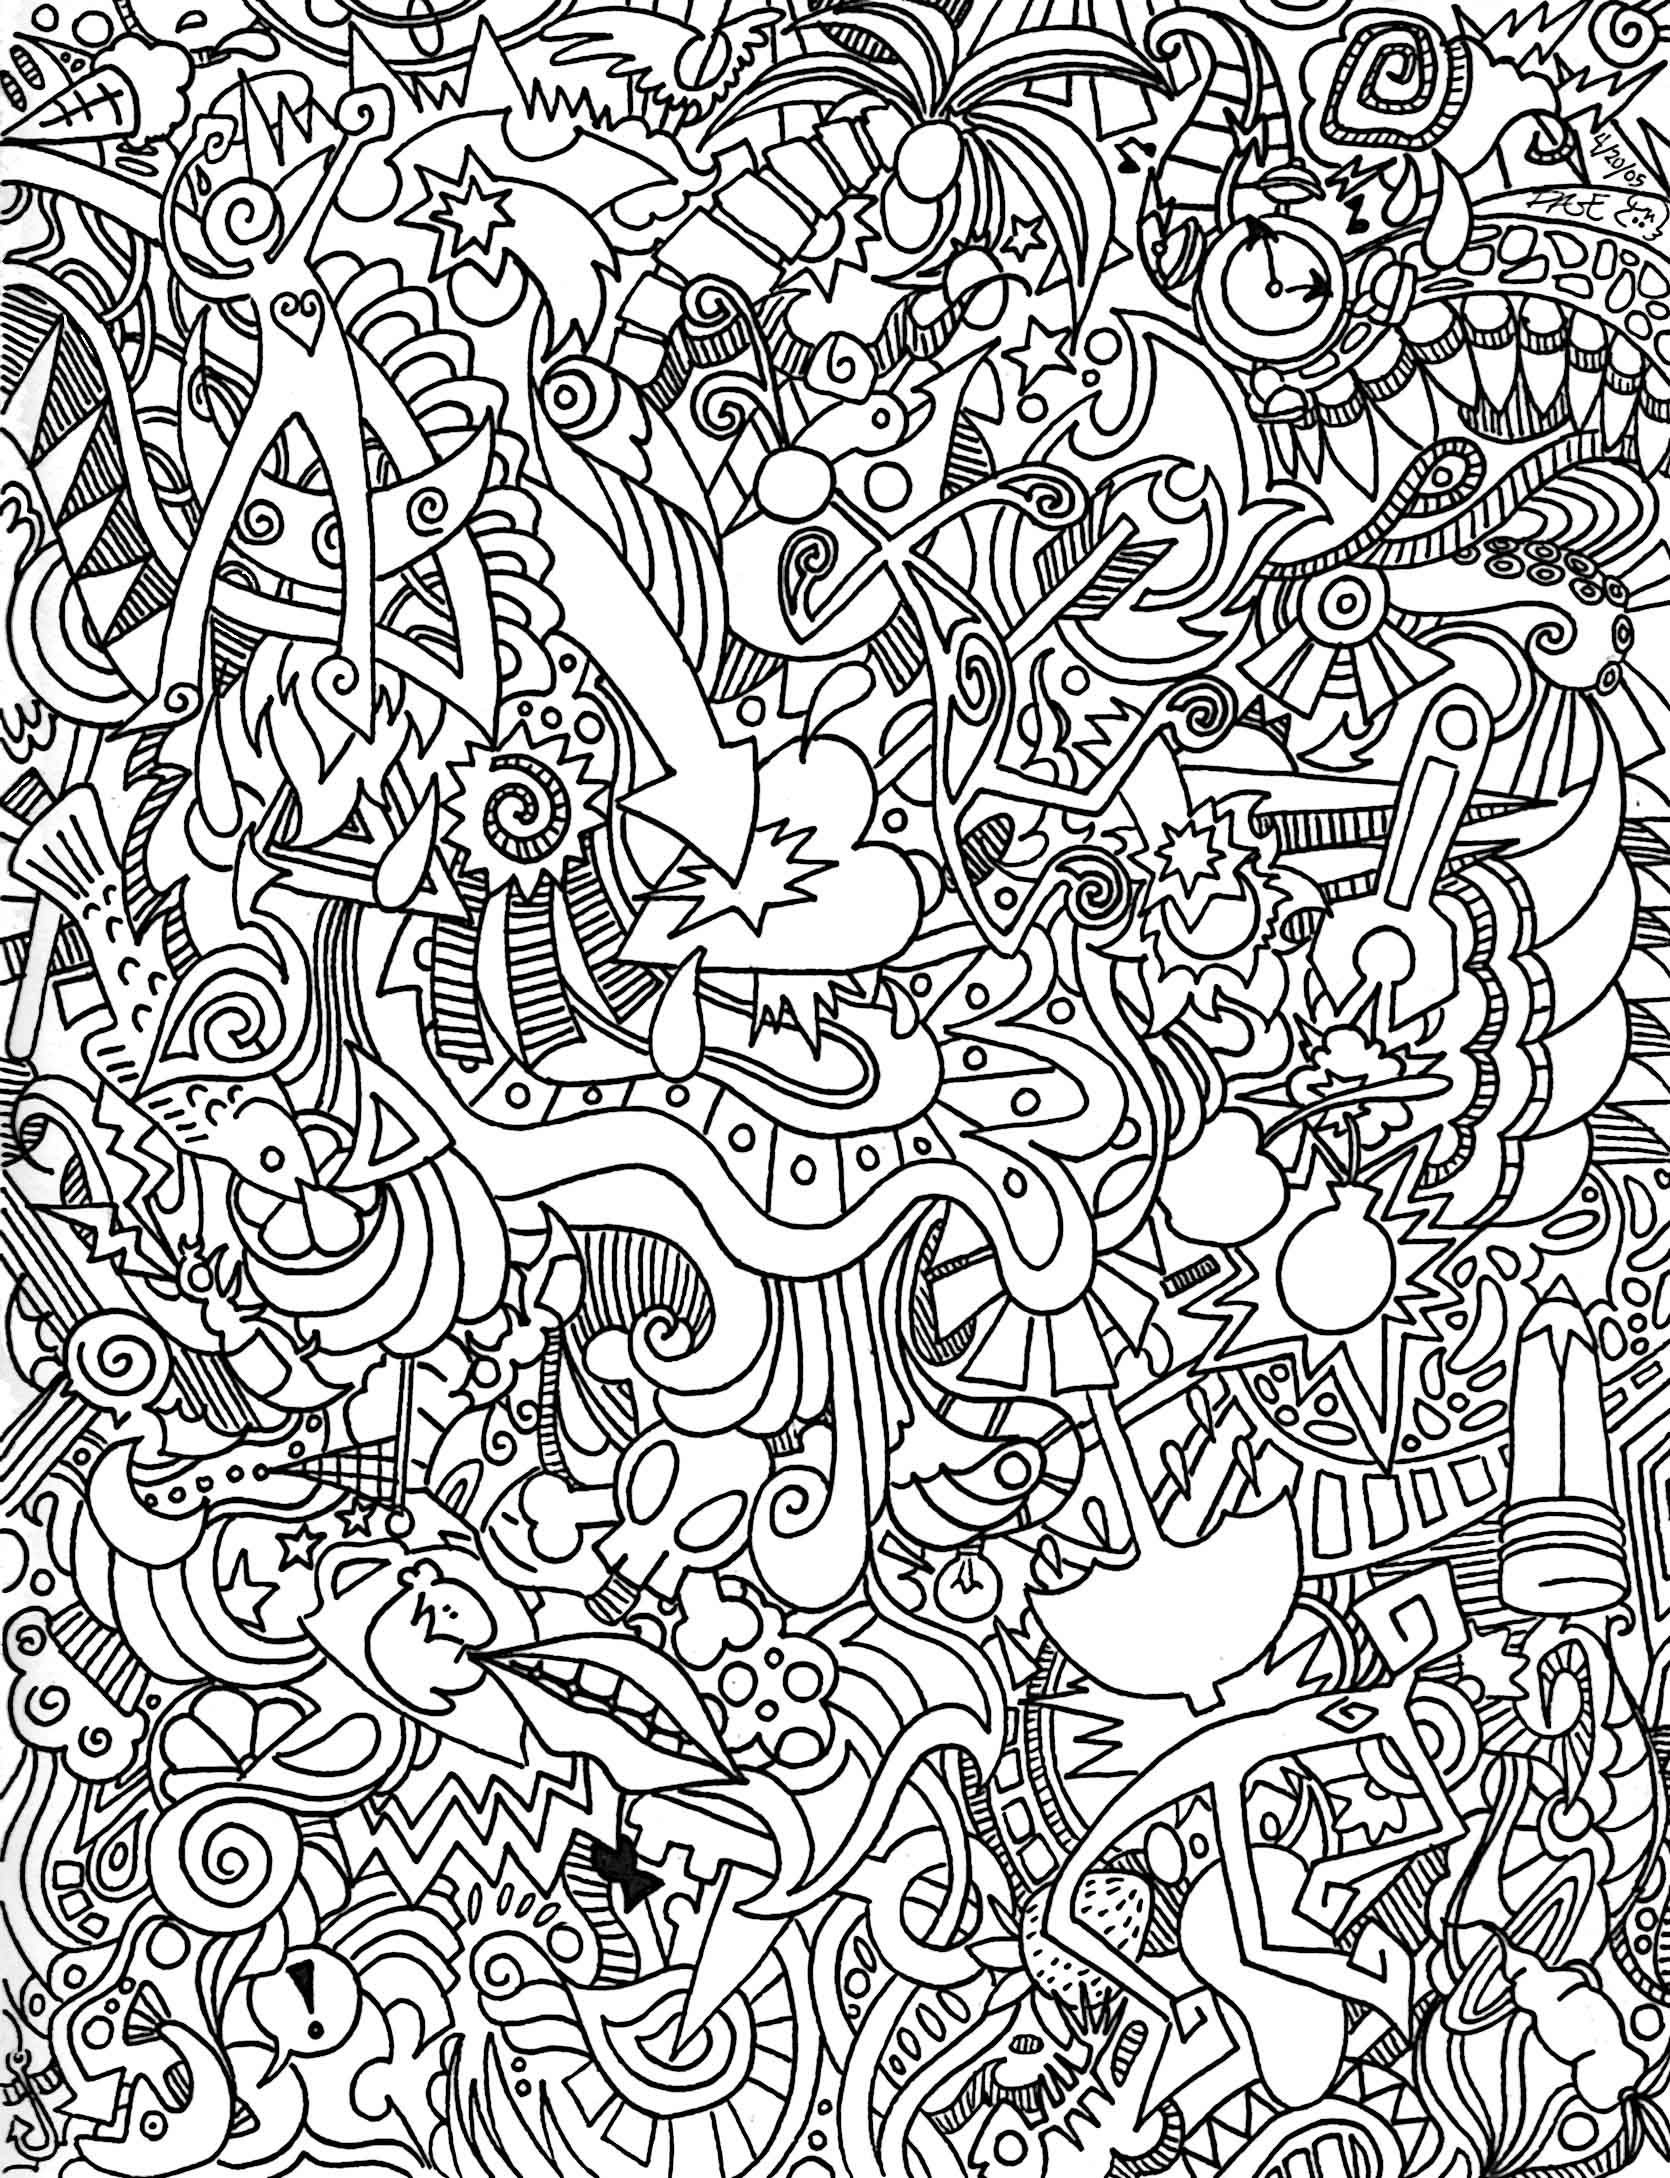 Full Page Insanity 1 Abstract Coloring Pages Space Coloring Pages Mandala Coloring Pages